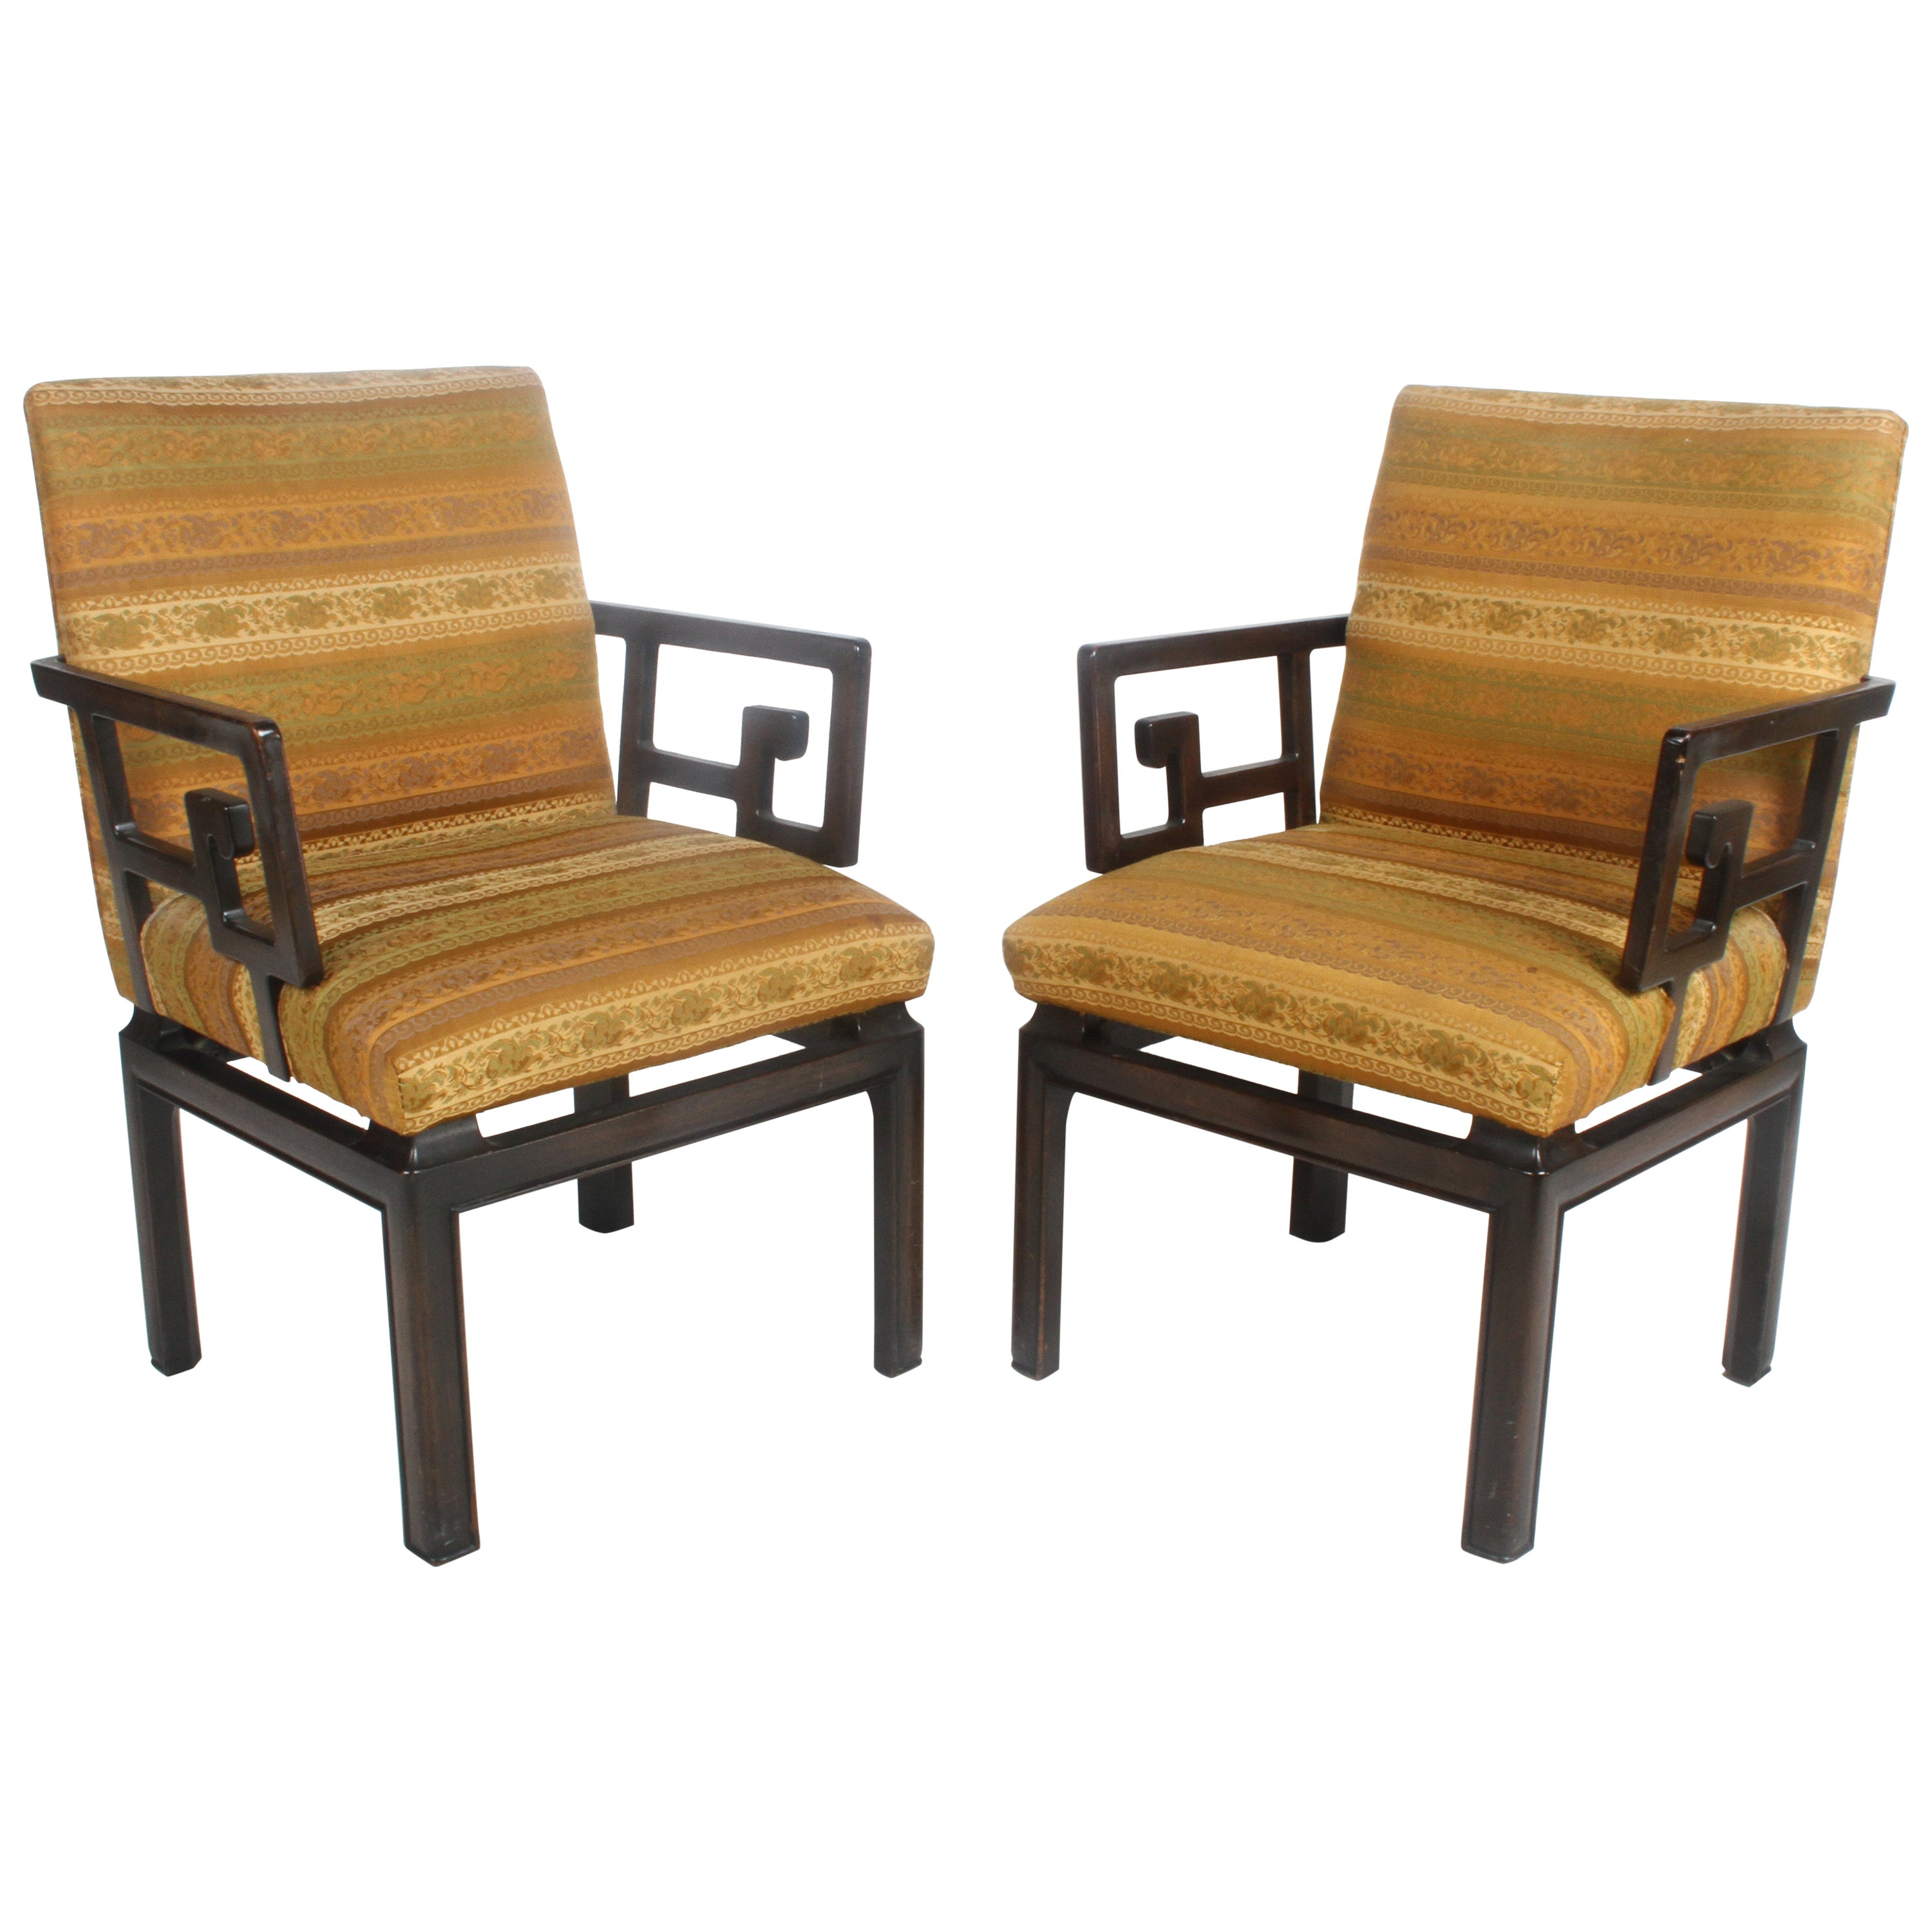 Pair of Baker Far East Greek Key Dining or Occasional Chairs